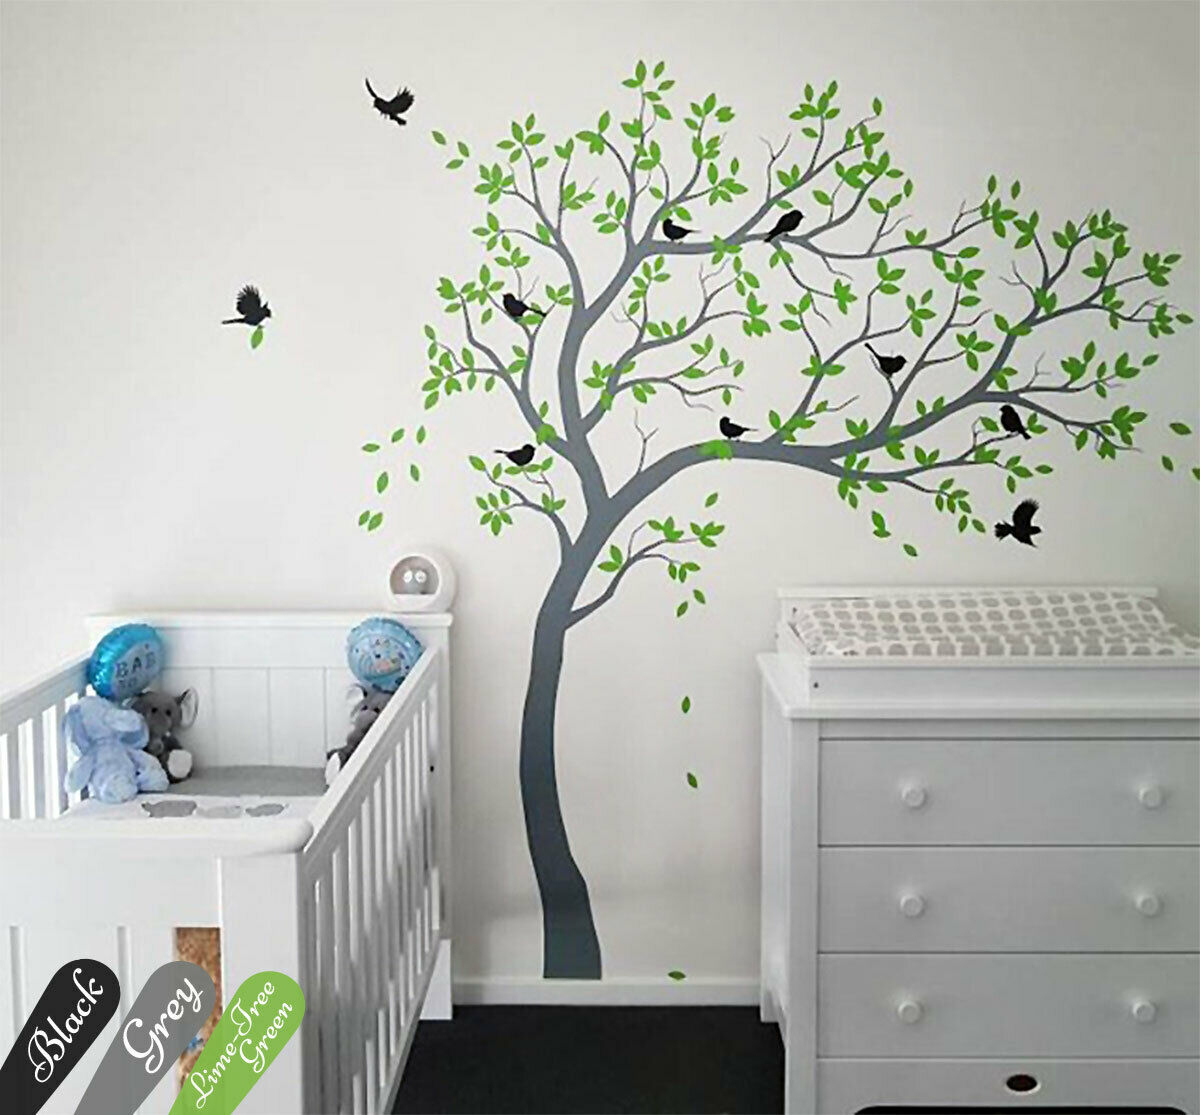 Details About Nursery Tree Wall Decal Mural Sticker Beautiful Large Tree Wall Decor Kw032R With Tree Wall Decor (Gallery 15 of 30)